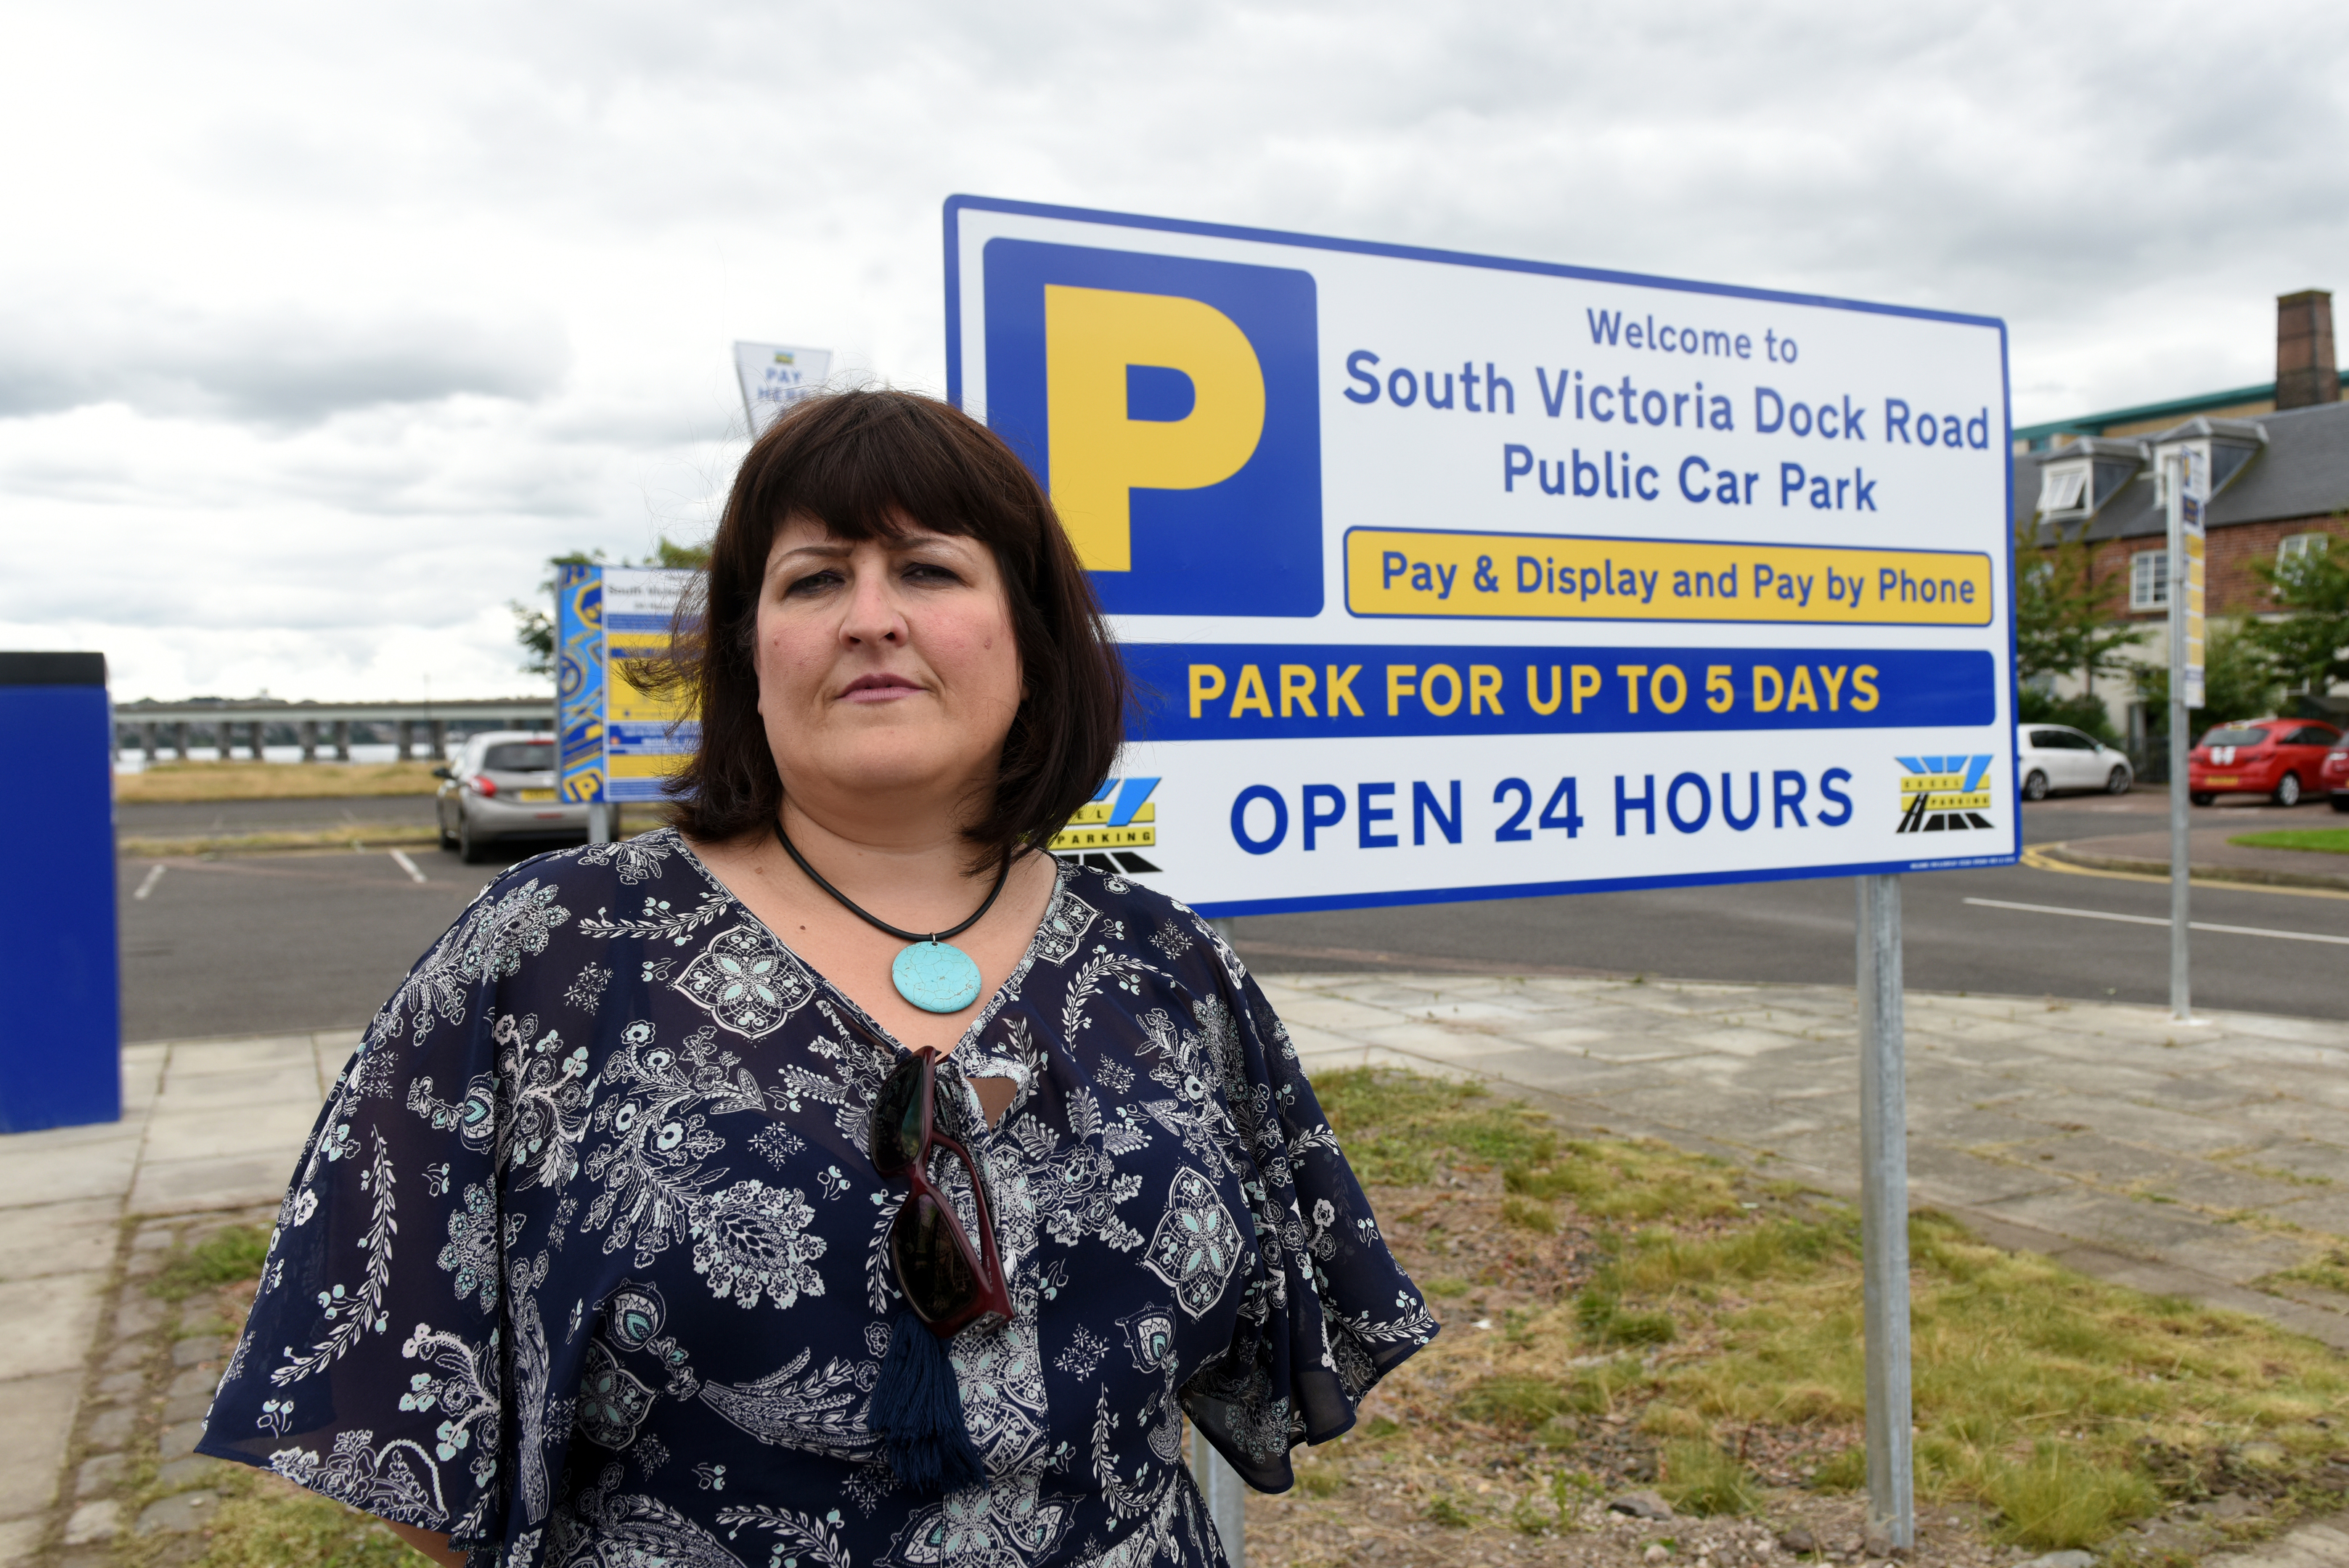 Councillor Short has accused Excel Parking of failing to inform Dundee City Council before beginning its operation.